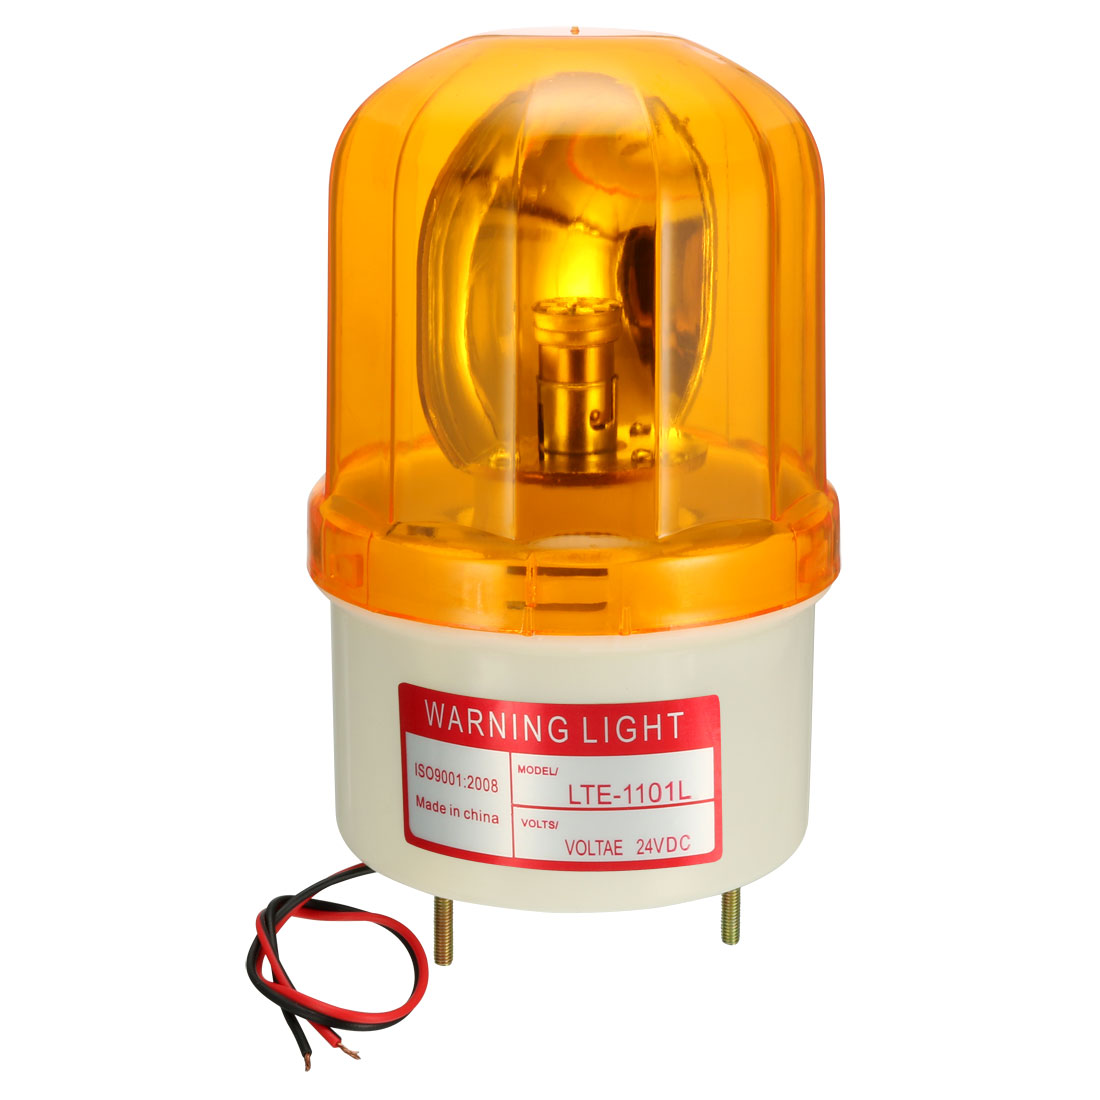 LED Warning Light Bulb Rotating Flashing Signal Lamp DC 24V Yellow LTE1101L